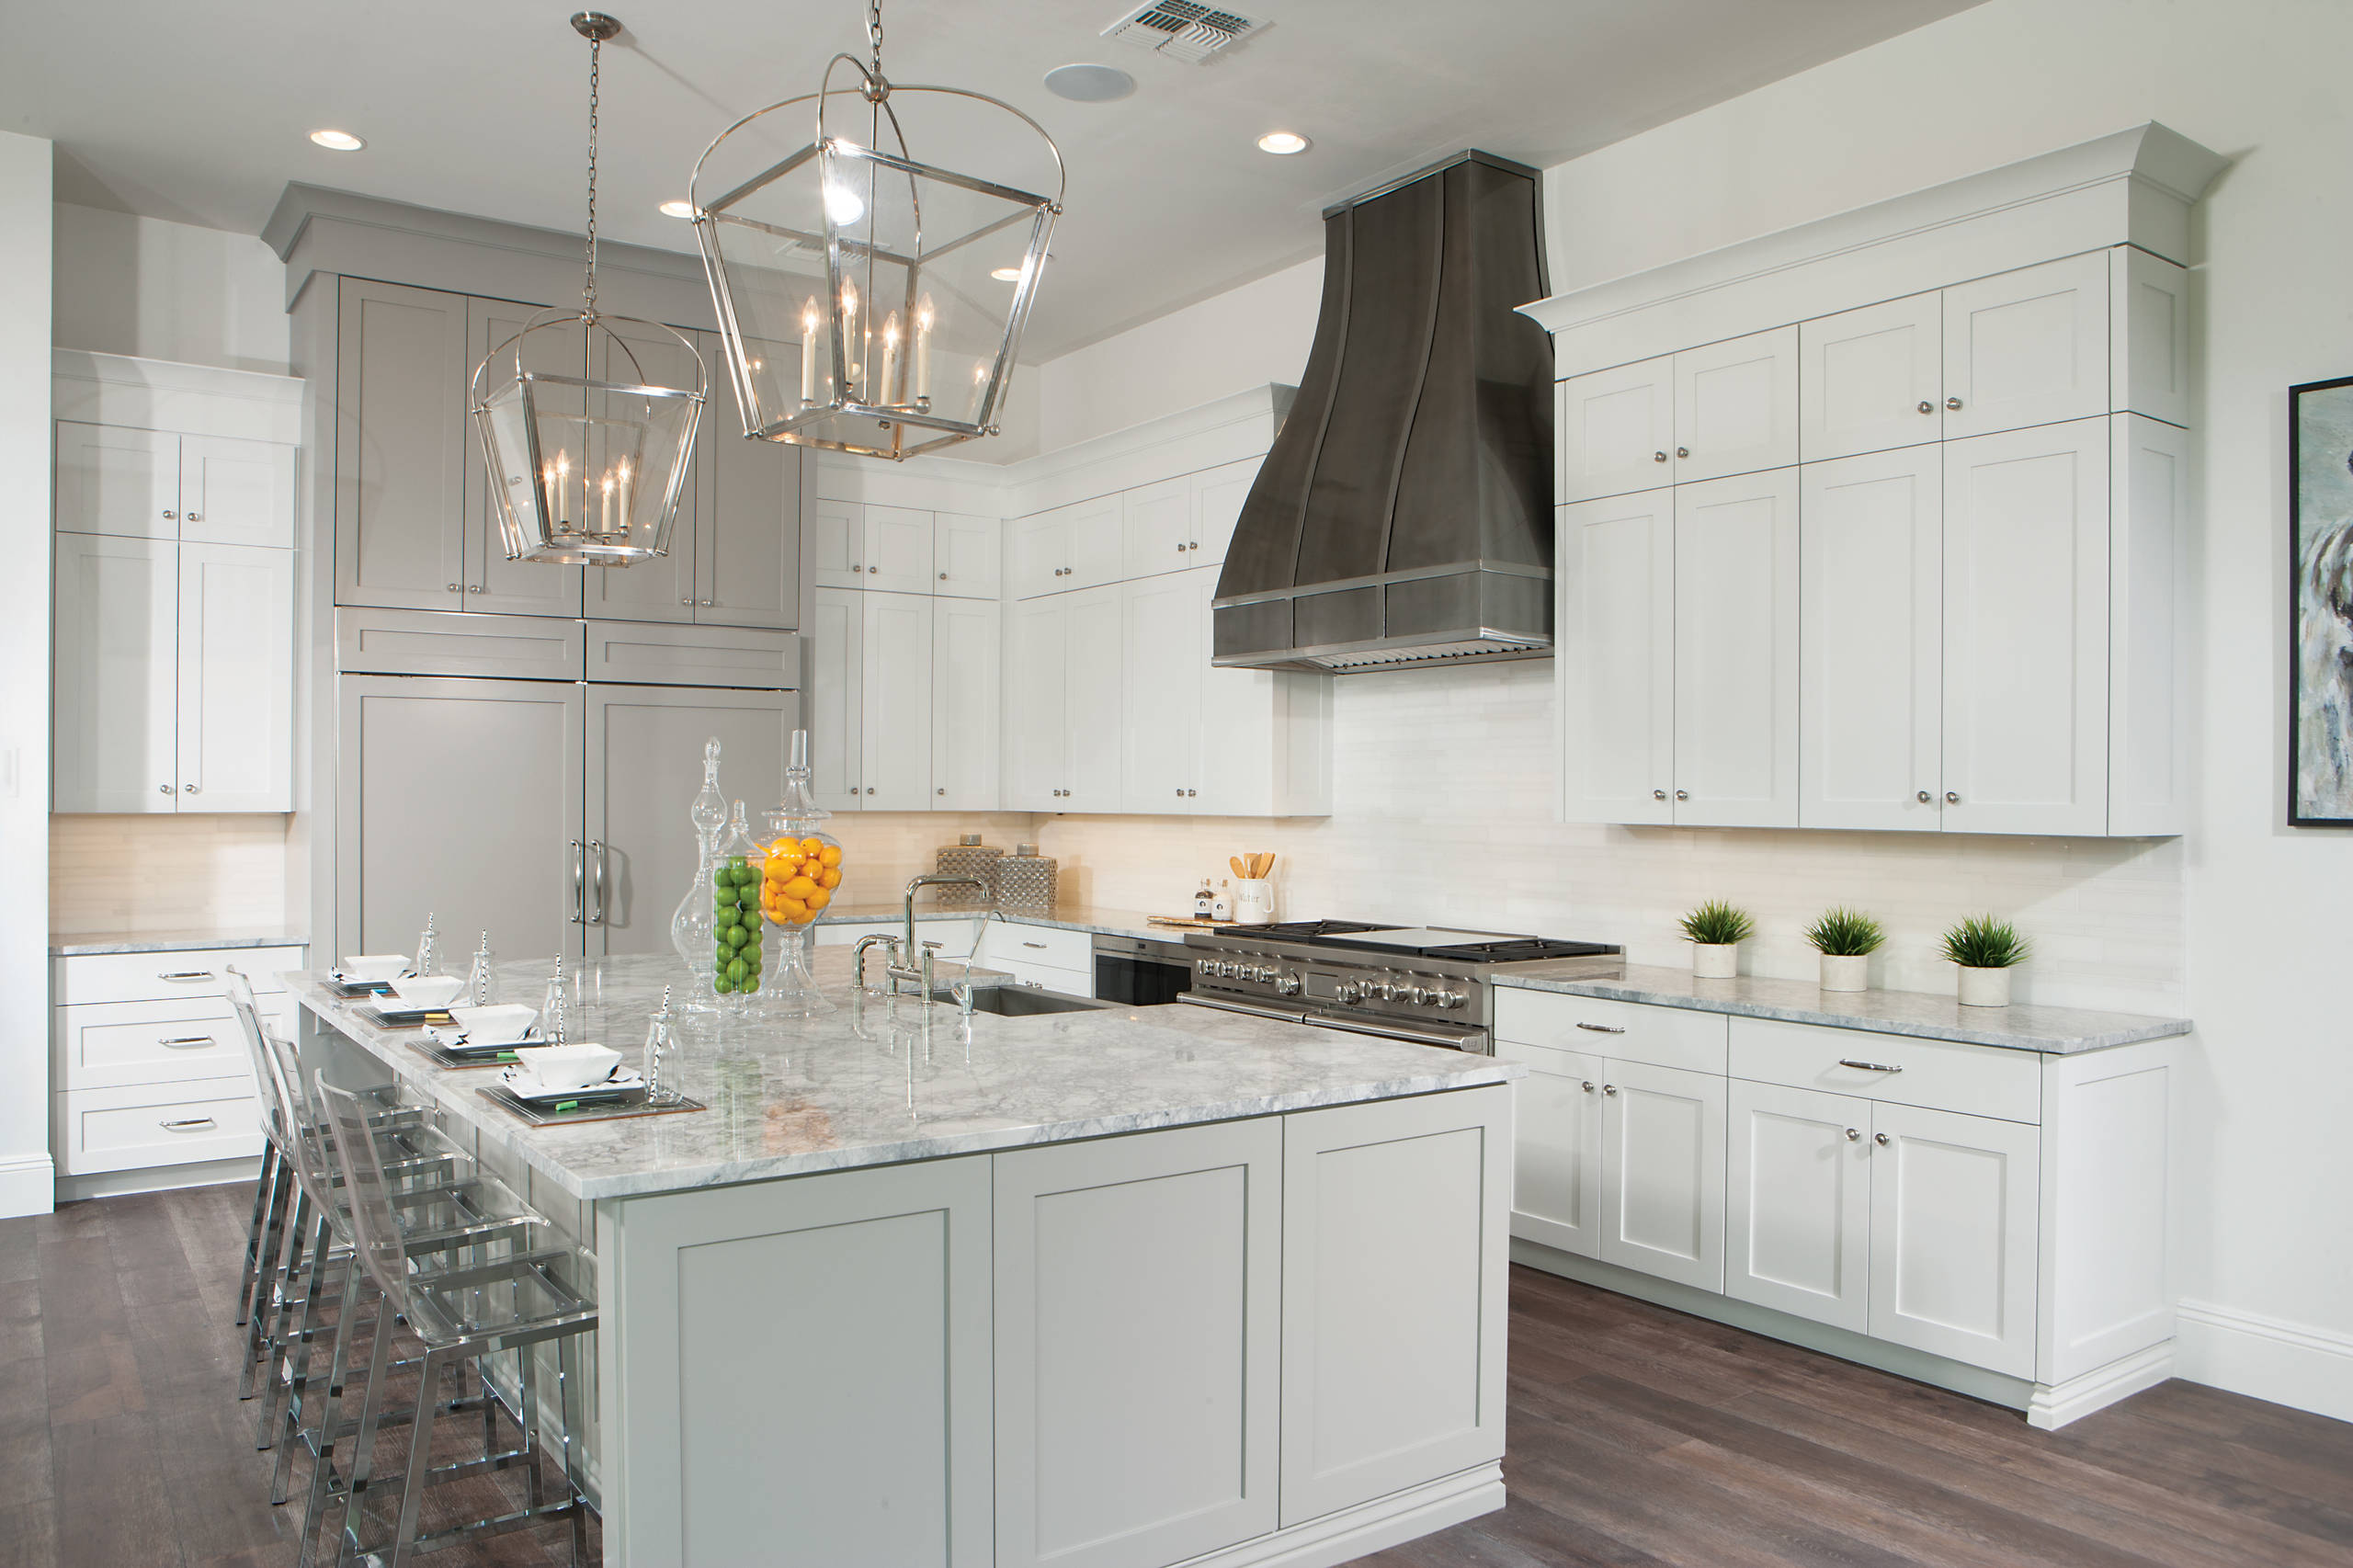 White Kitchen Dark Floors Transitional Kitchen Apothecary Jars Casual Elegance Classic Kitchen Clear Counter Stools L Shaped Kitchen Lanterns Over Island